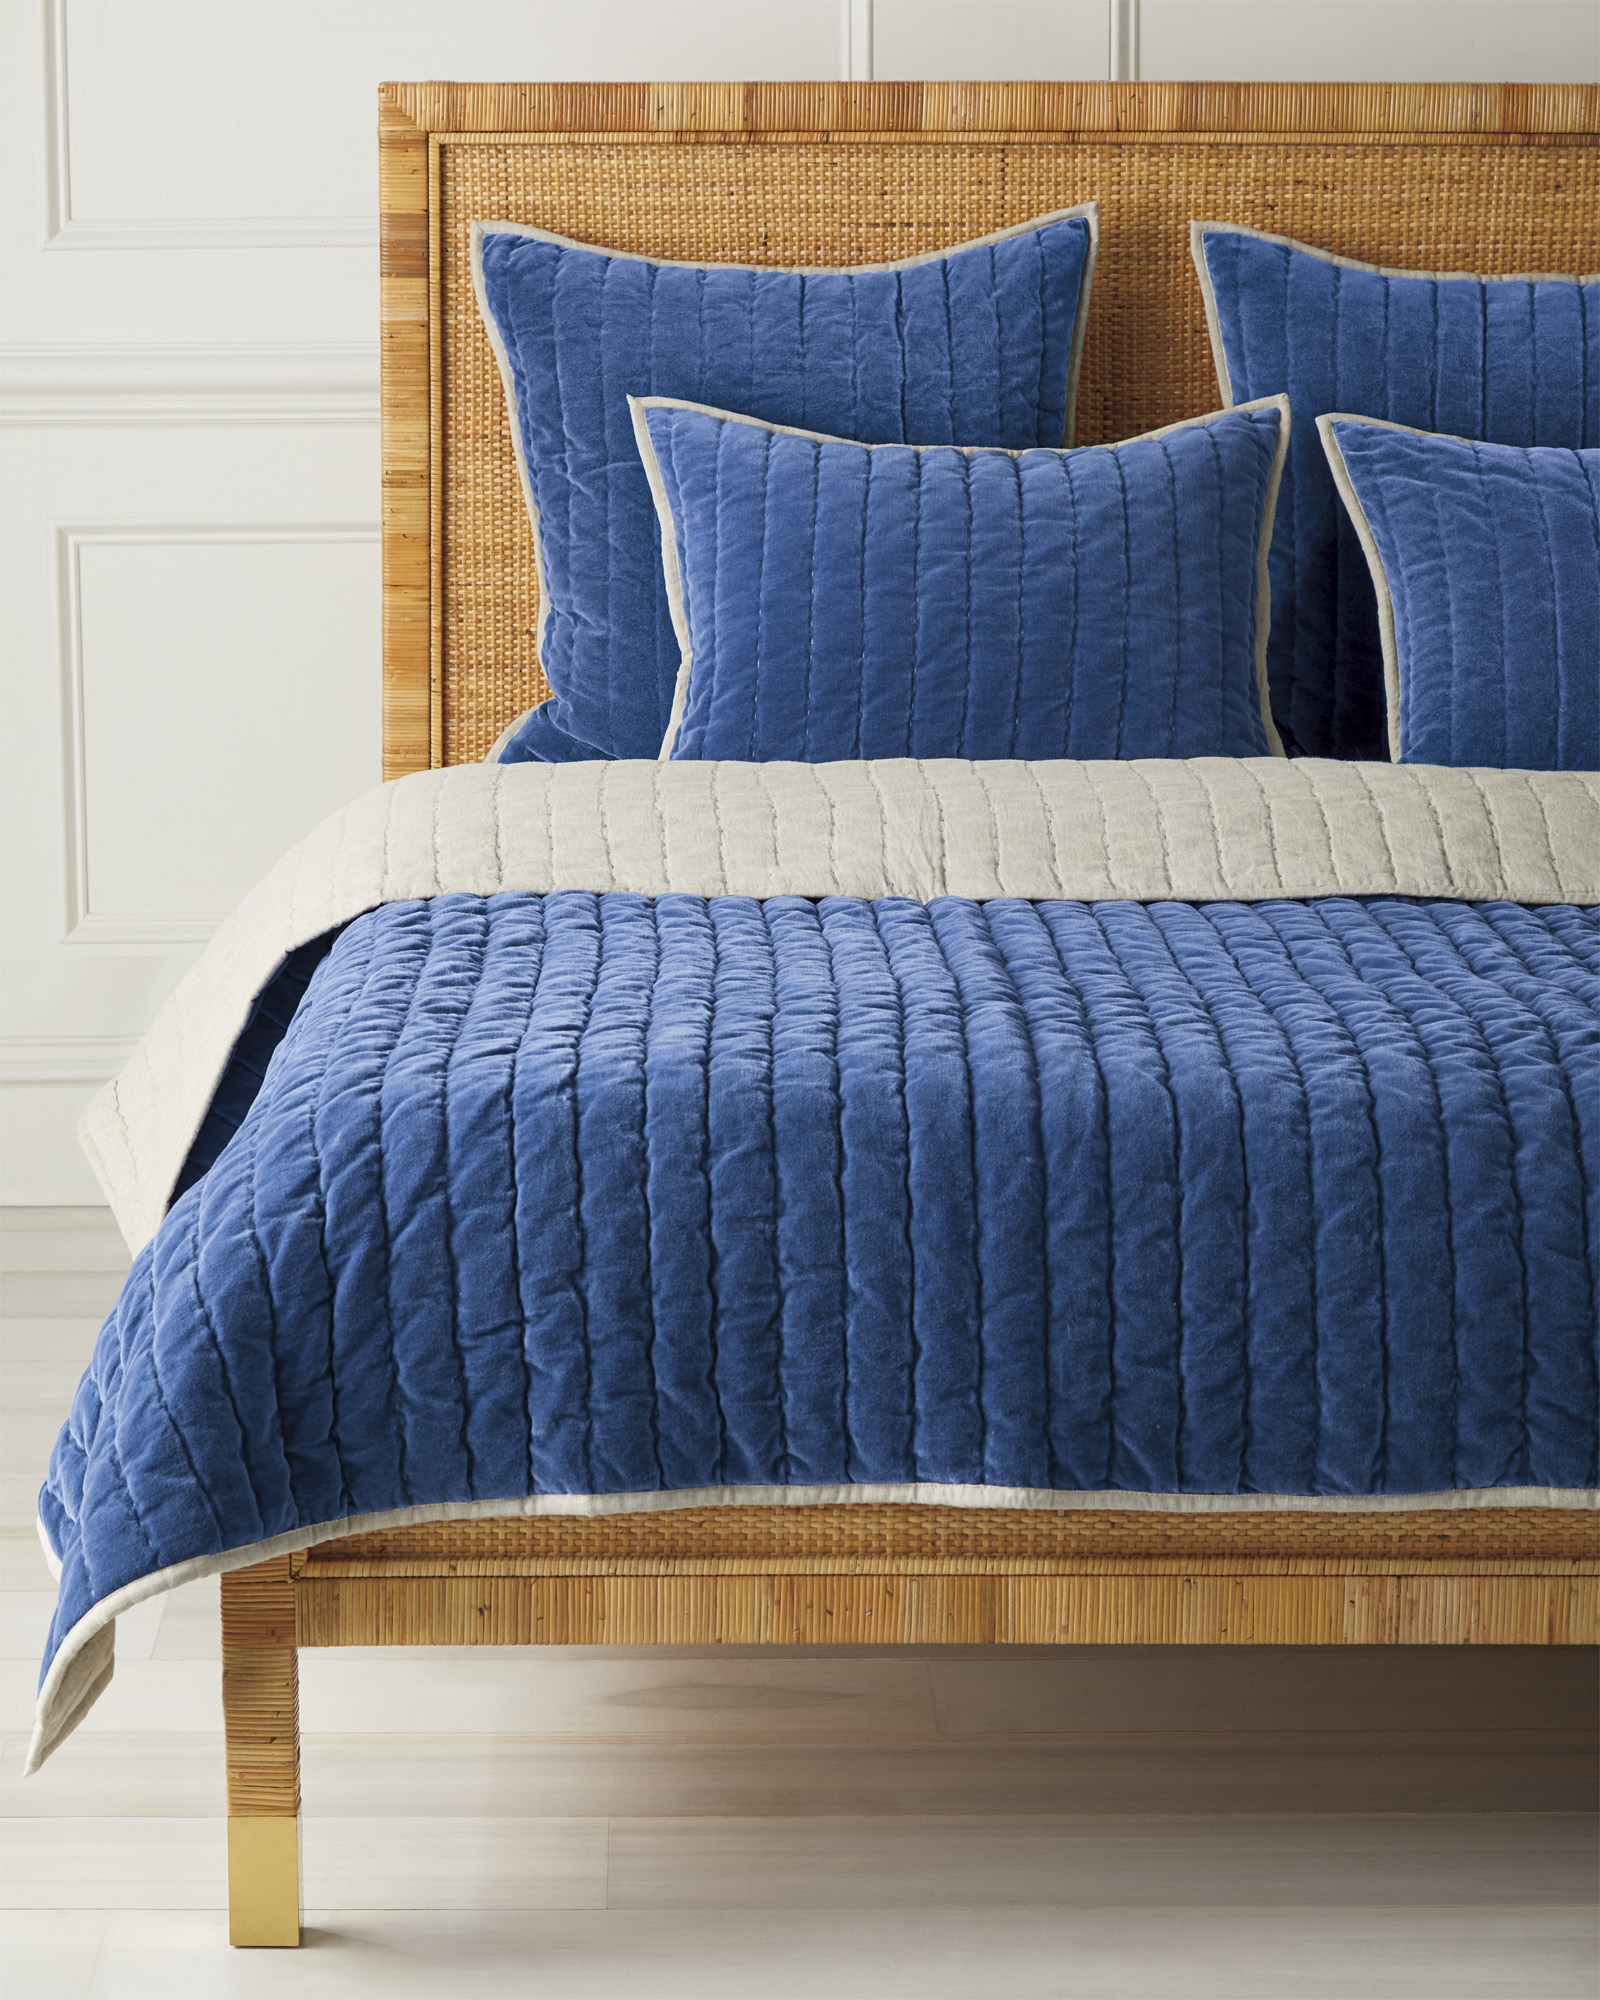 Delwood Velvet Quilt, French Blue